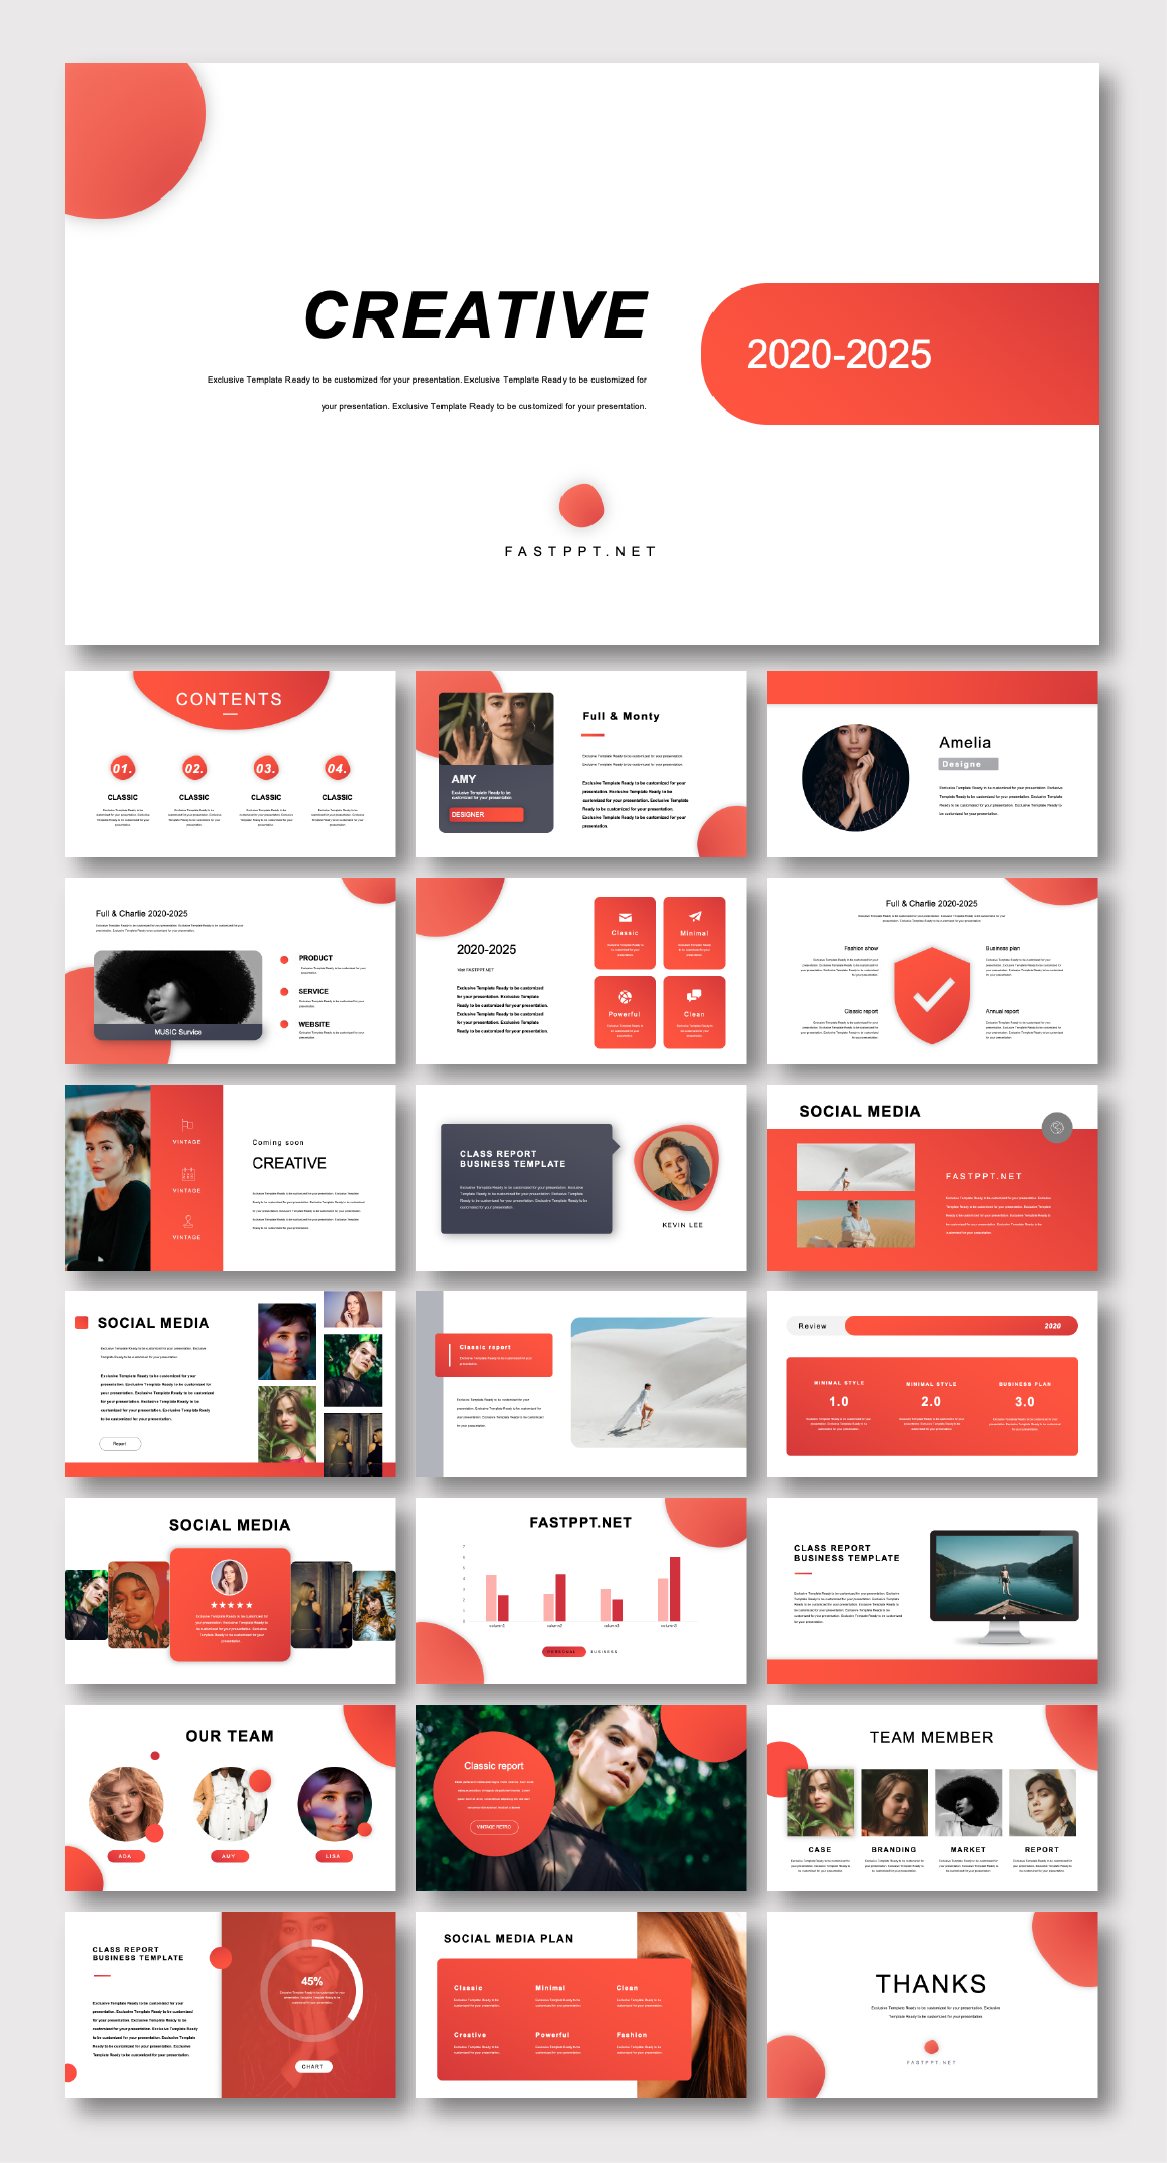 2 in 1 Business Plan  Report Presentation Template 2 in 1 Business